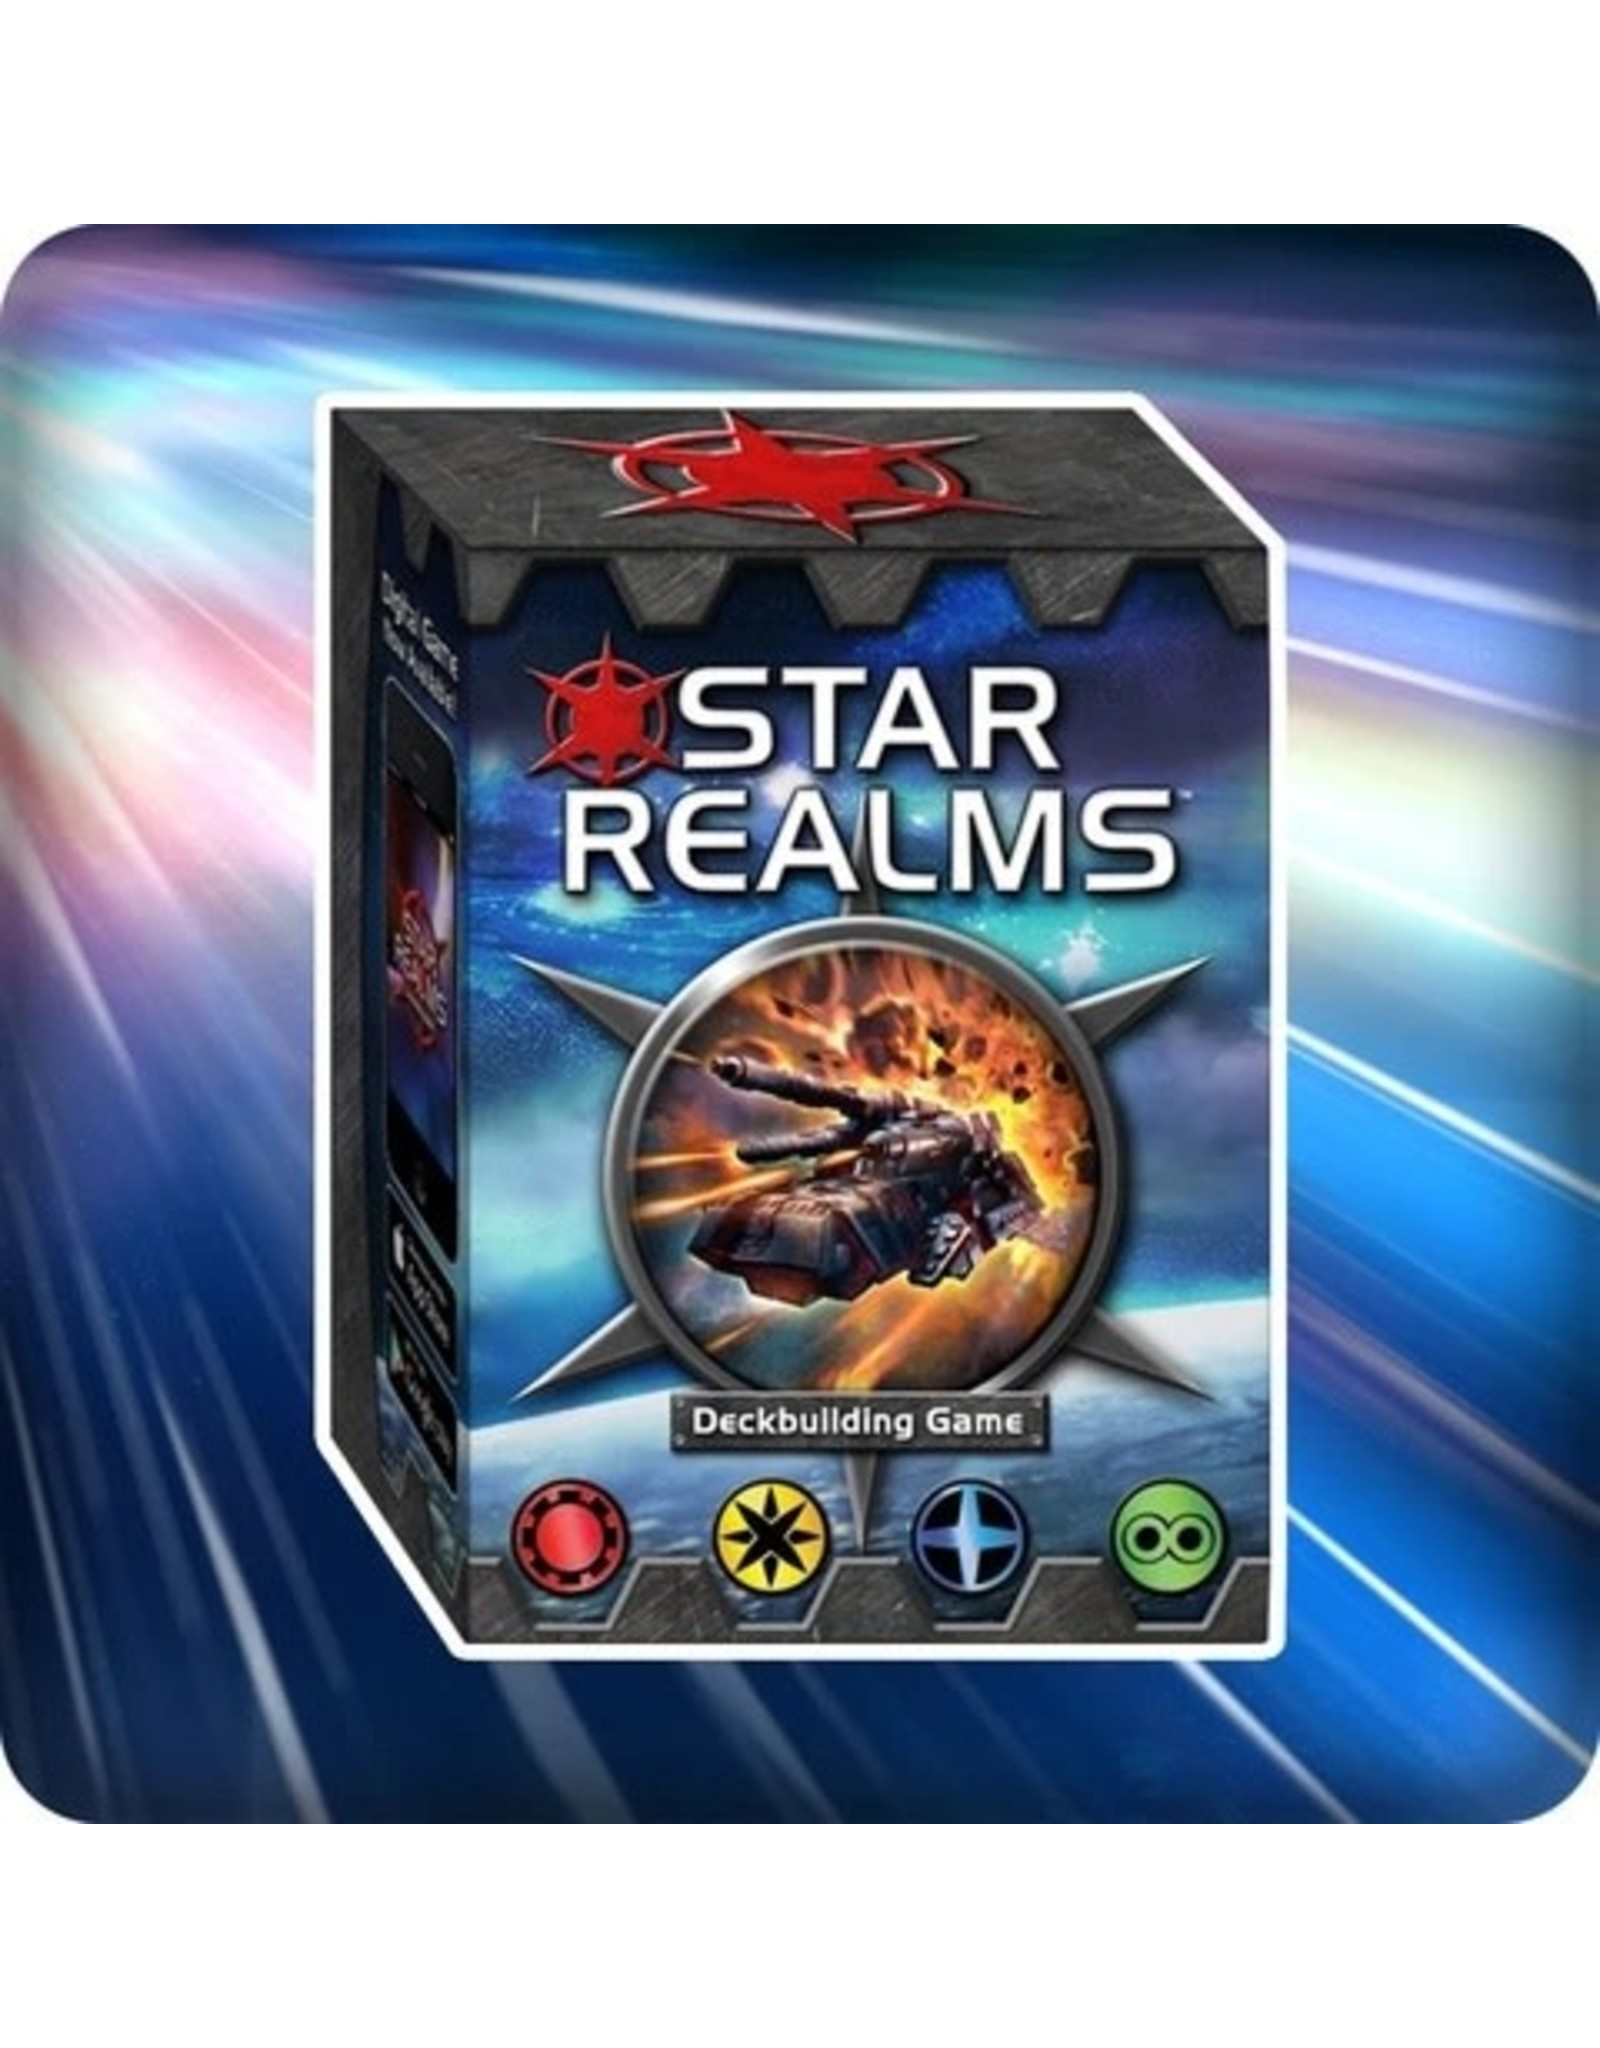 White Wizard Games Star Realms: A Deckbuilding Game